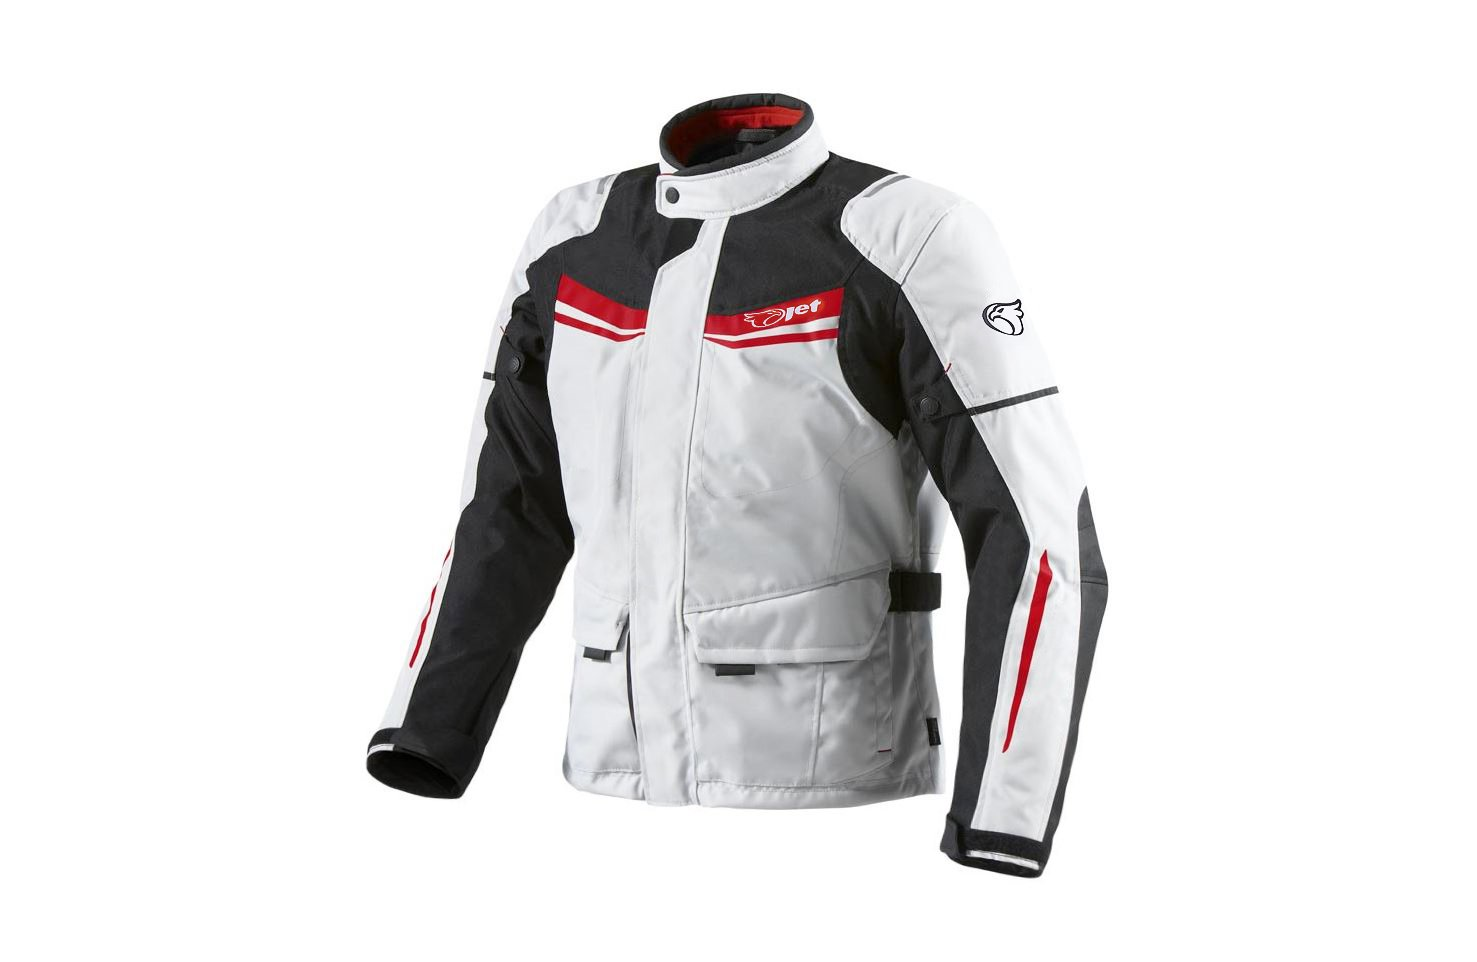 JET Mens White Textile Protective Motorcycle Motorbike Jacket Waterproof CE Armoured M , Blue//White 38-40